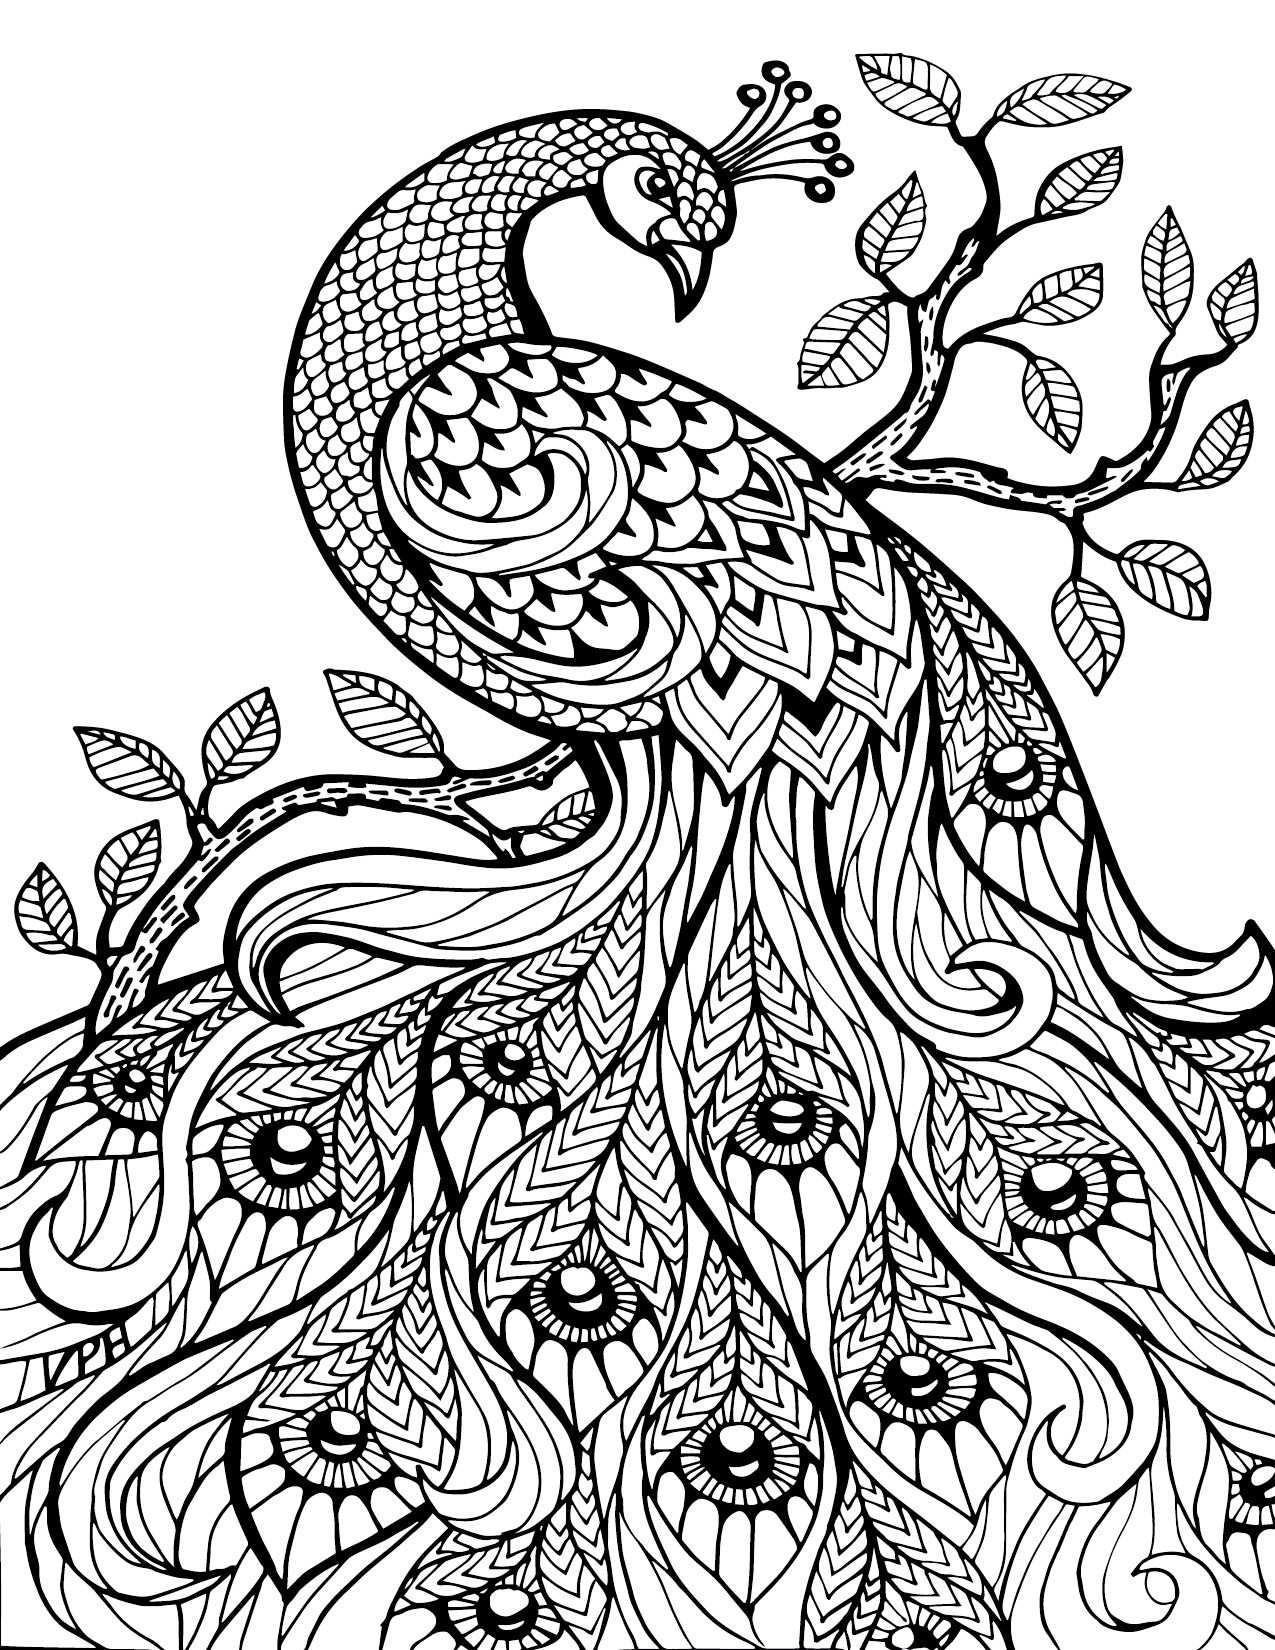 Adult Coloring For Mental Health